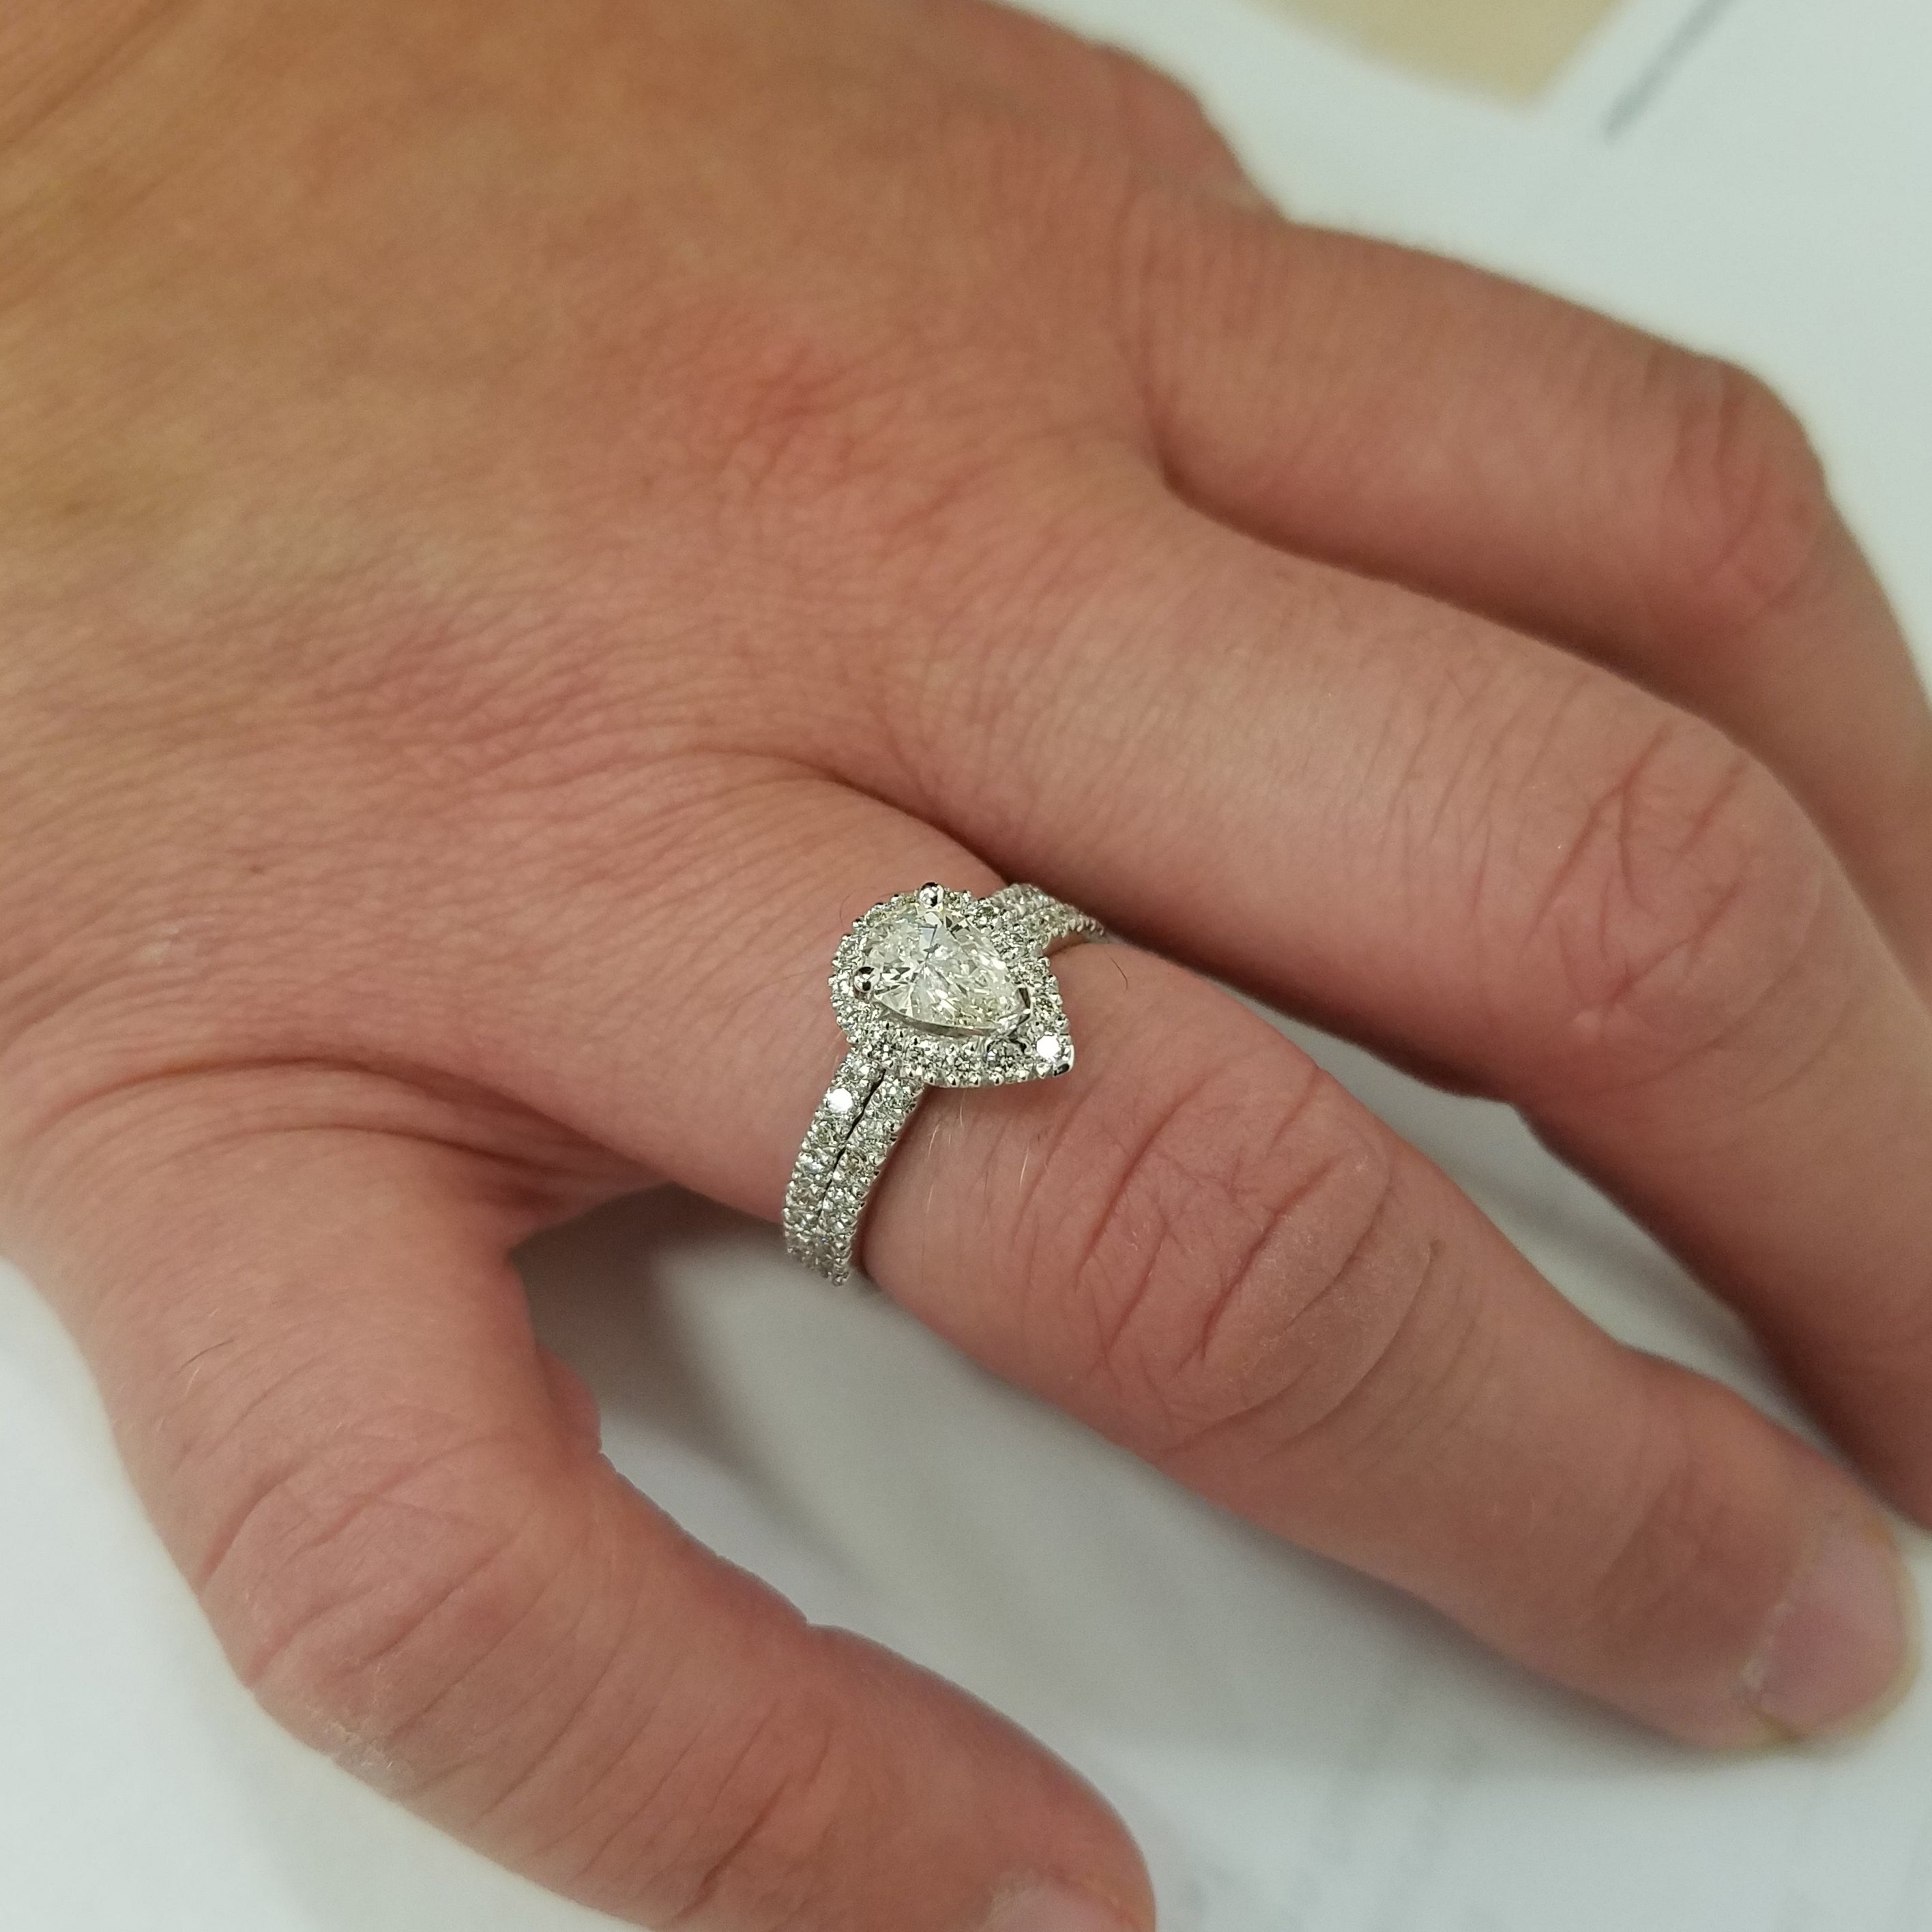 perfect schlosberg pav spiegelman trend shaped jewelry band inside pear weddings engagement with diamonds rings szer diamond news ring